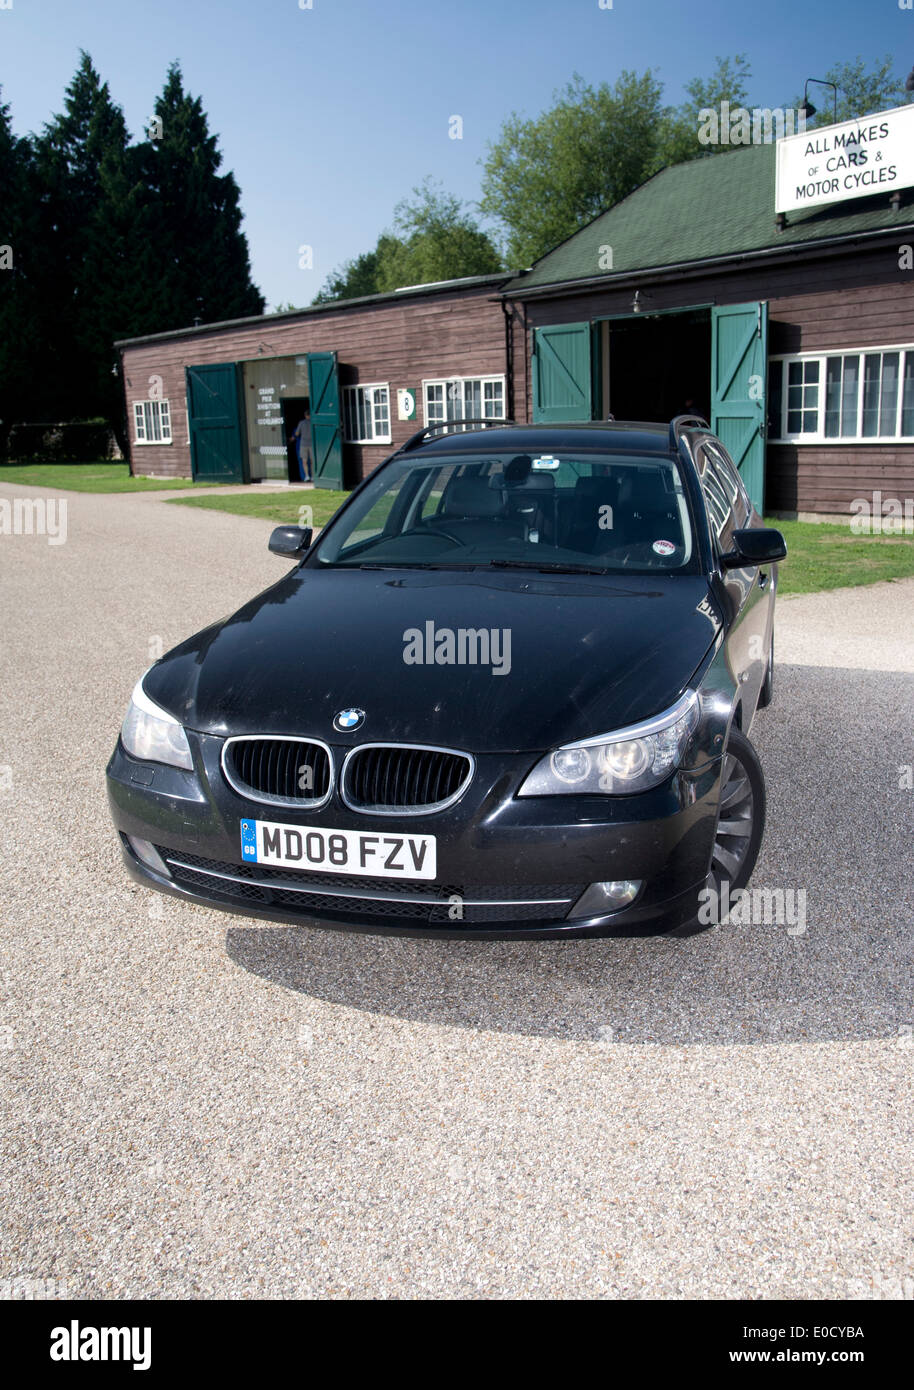 BMW 5 series Touring estate car, E61 face lift 2008 model pictured ...